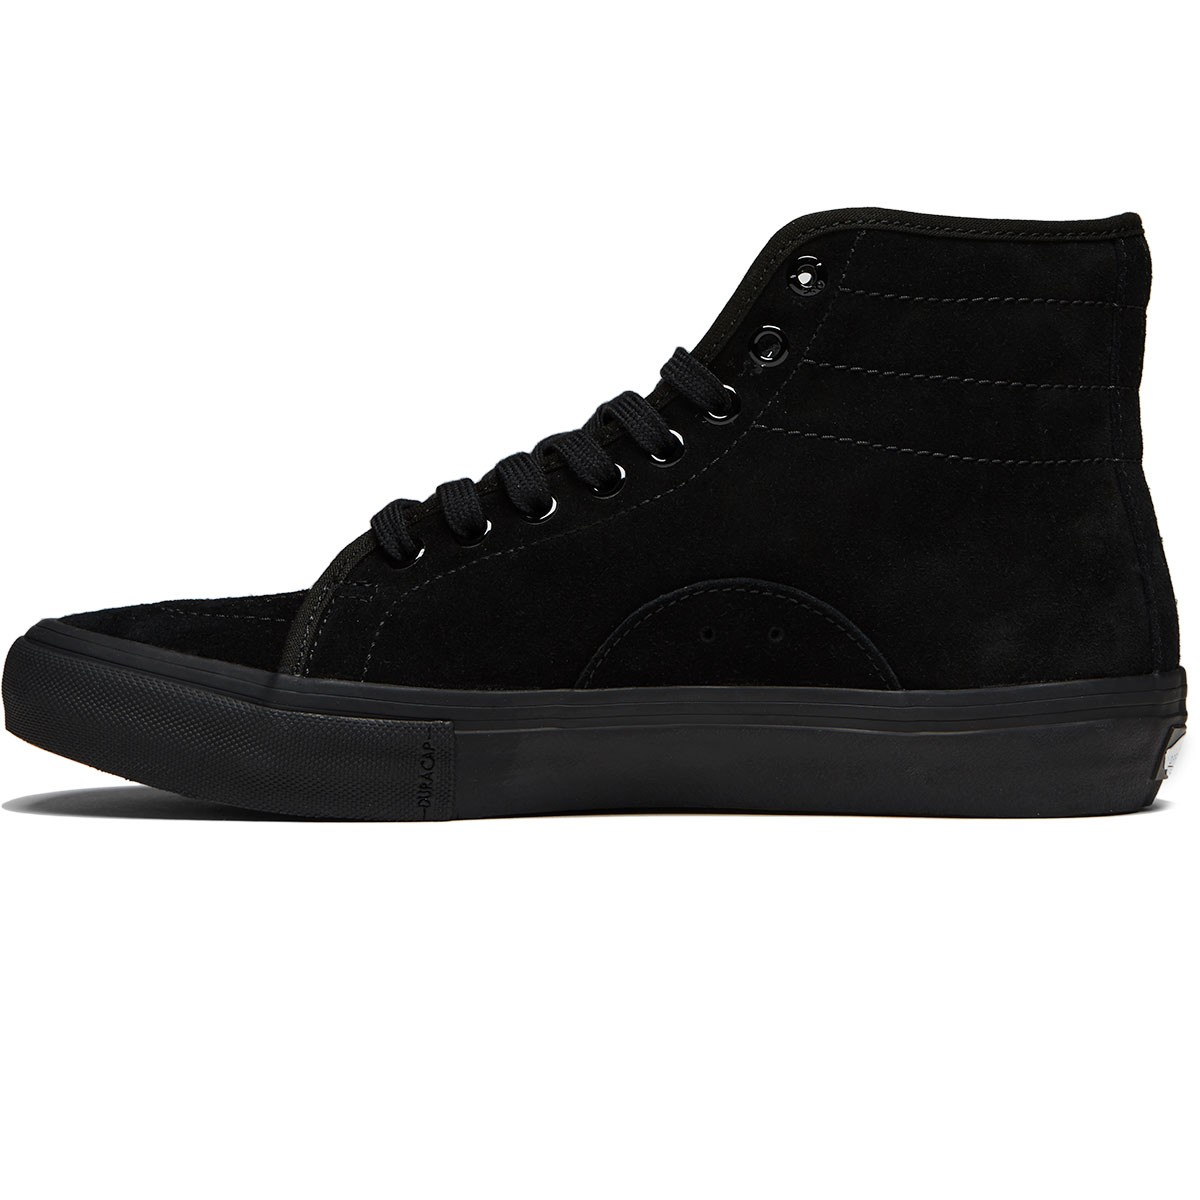 4777ed64e8 Vans AV Classic High Pro Shoes - Blackout - 8.0